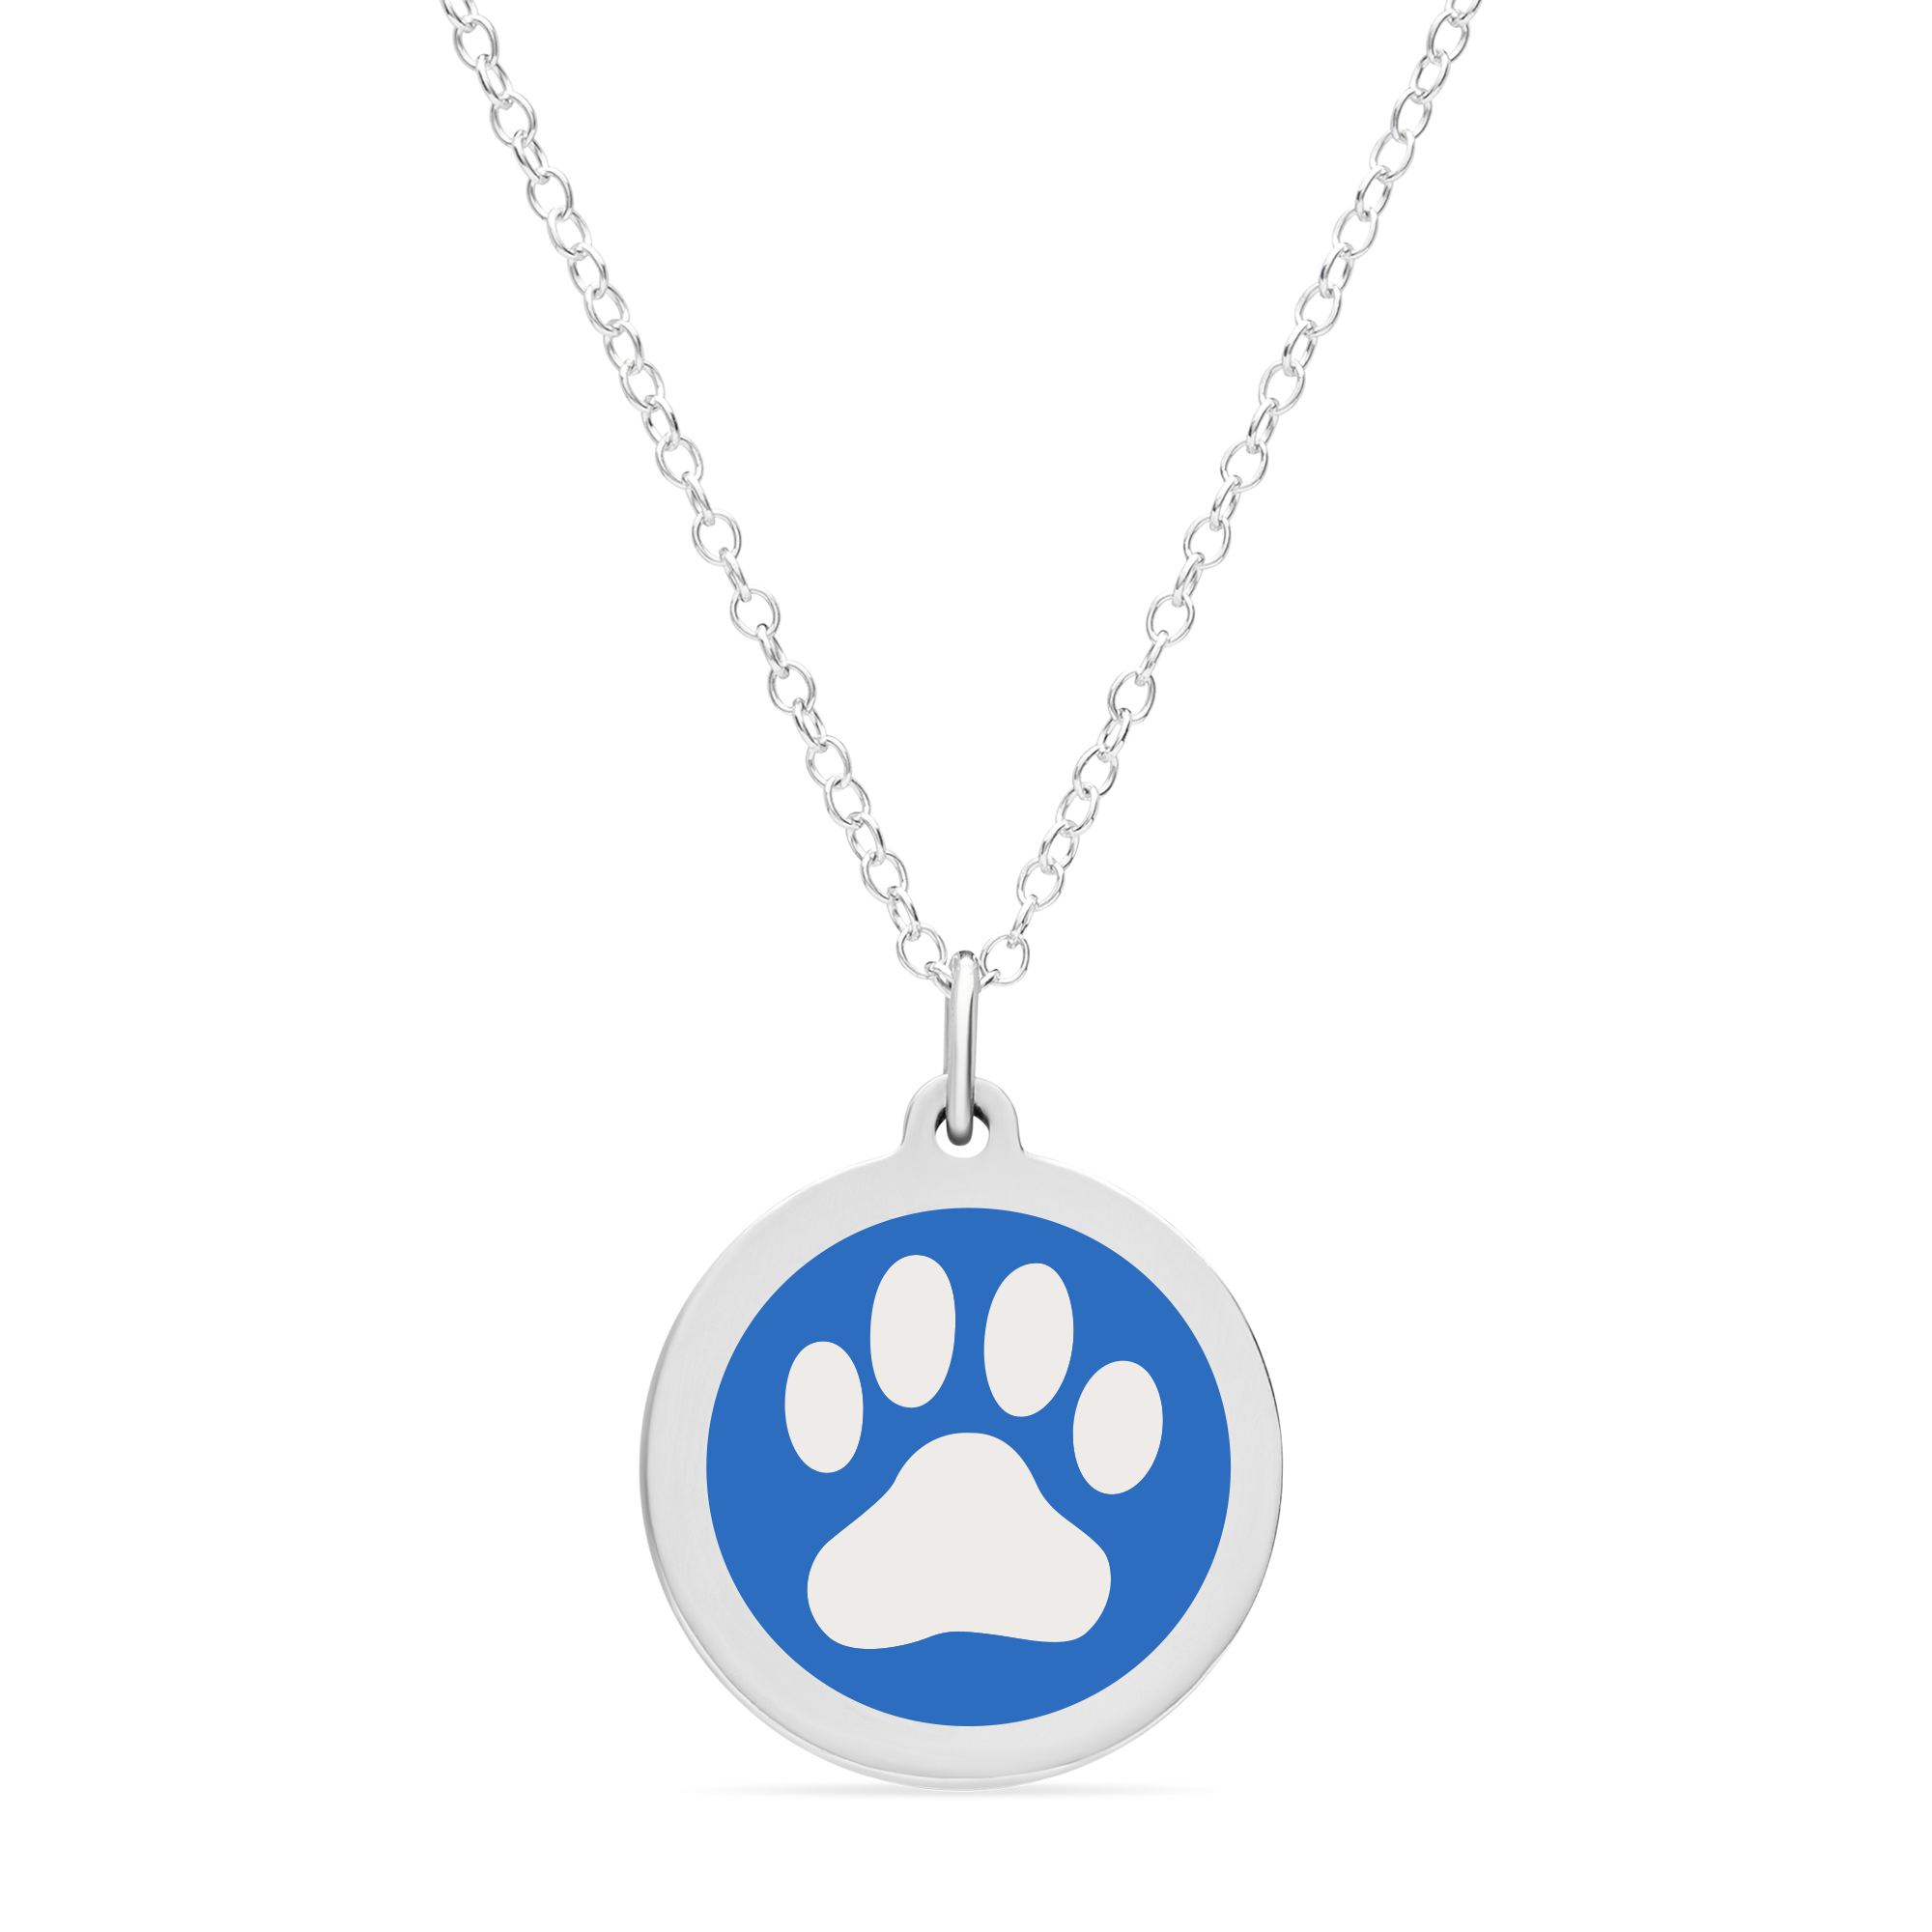 ORIGINAL PAW PRINT CHARM in sterling silver with rhodium plate